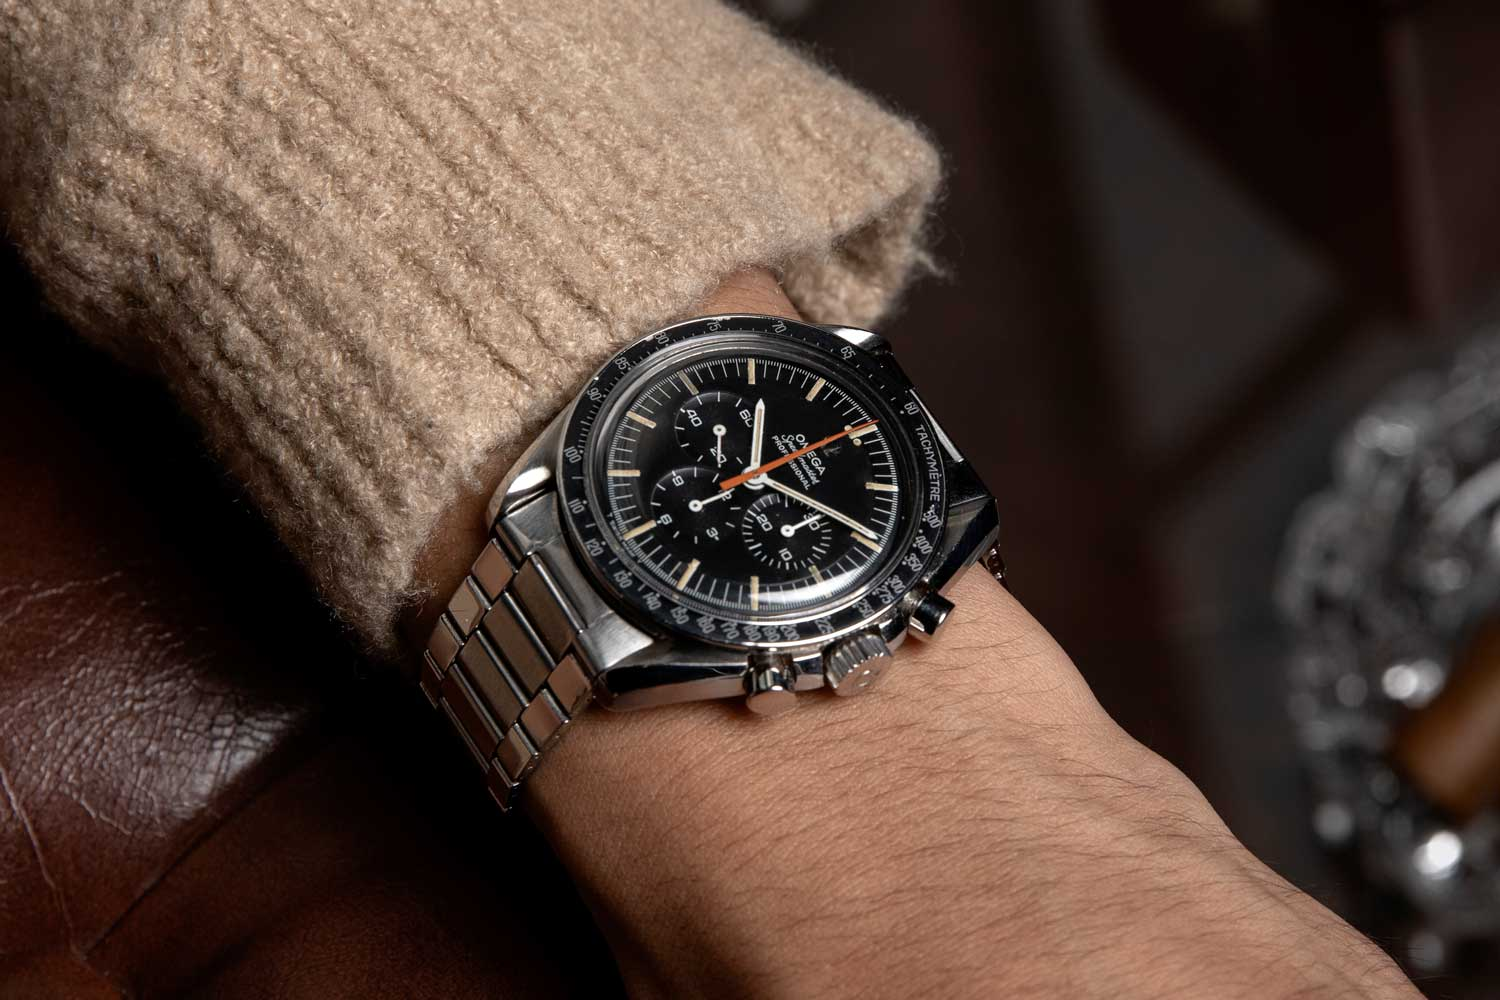 The 1968 Speedmaster ref. ST 145.012-67 with the peculiar orange chrono hand that collectors have nicknamed: The Ultraman (©Revolution)